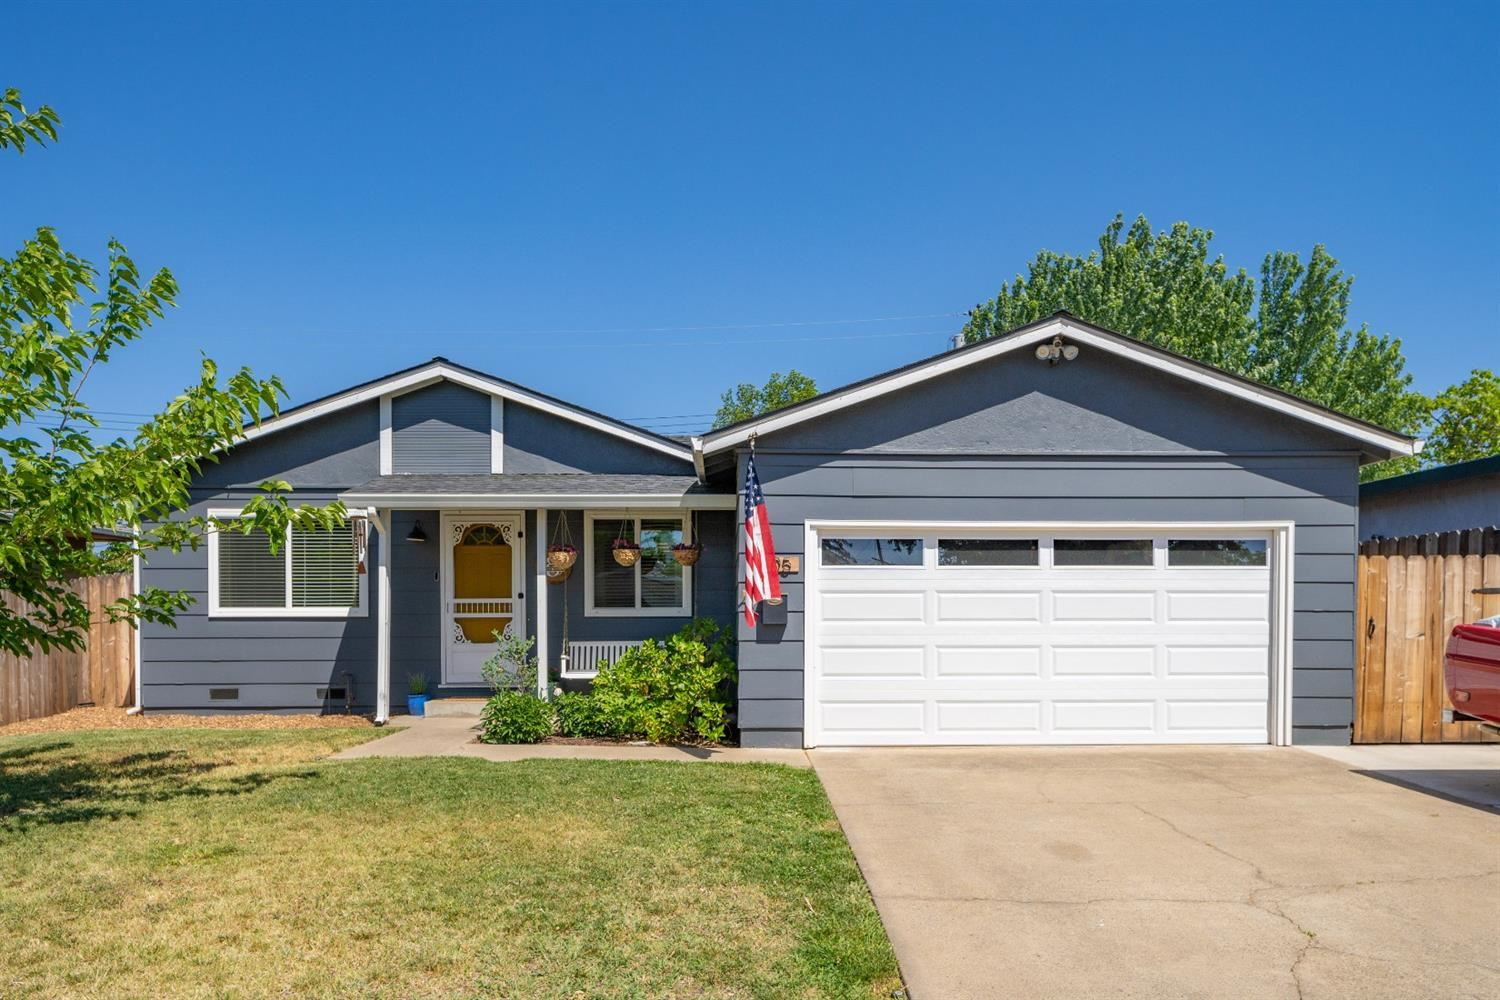 Photo of 305 Brentwood Road, Roseville, CA 95678 (MLS # 221044841)